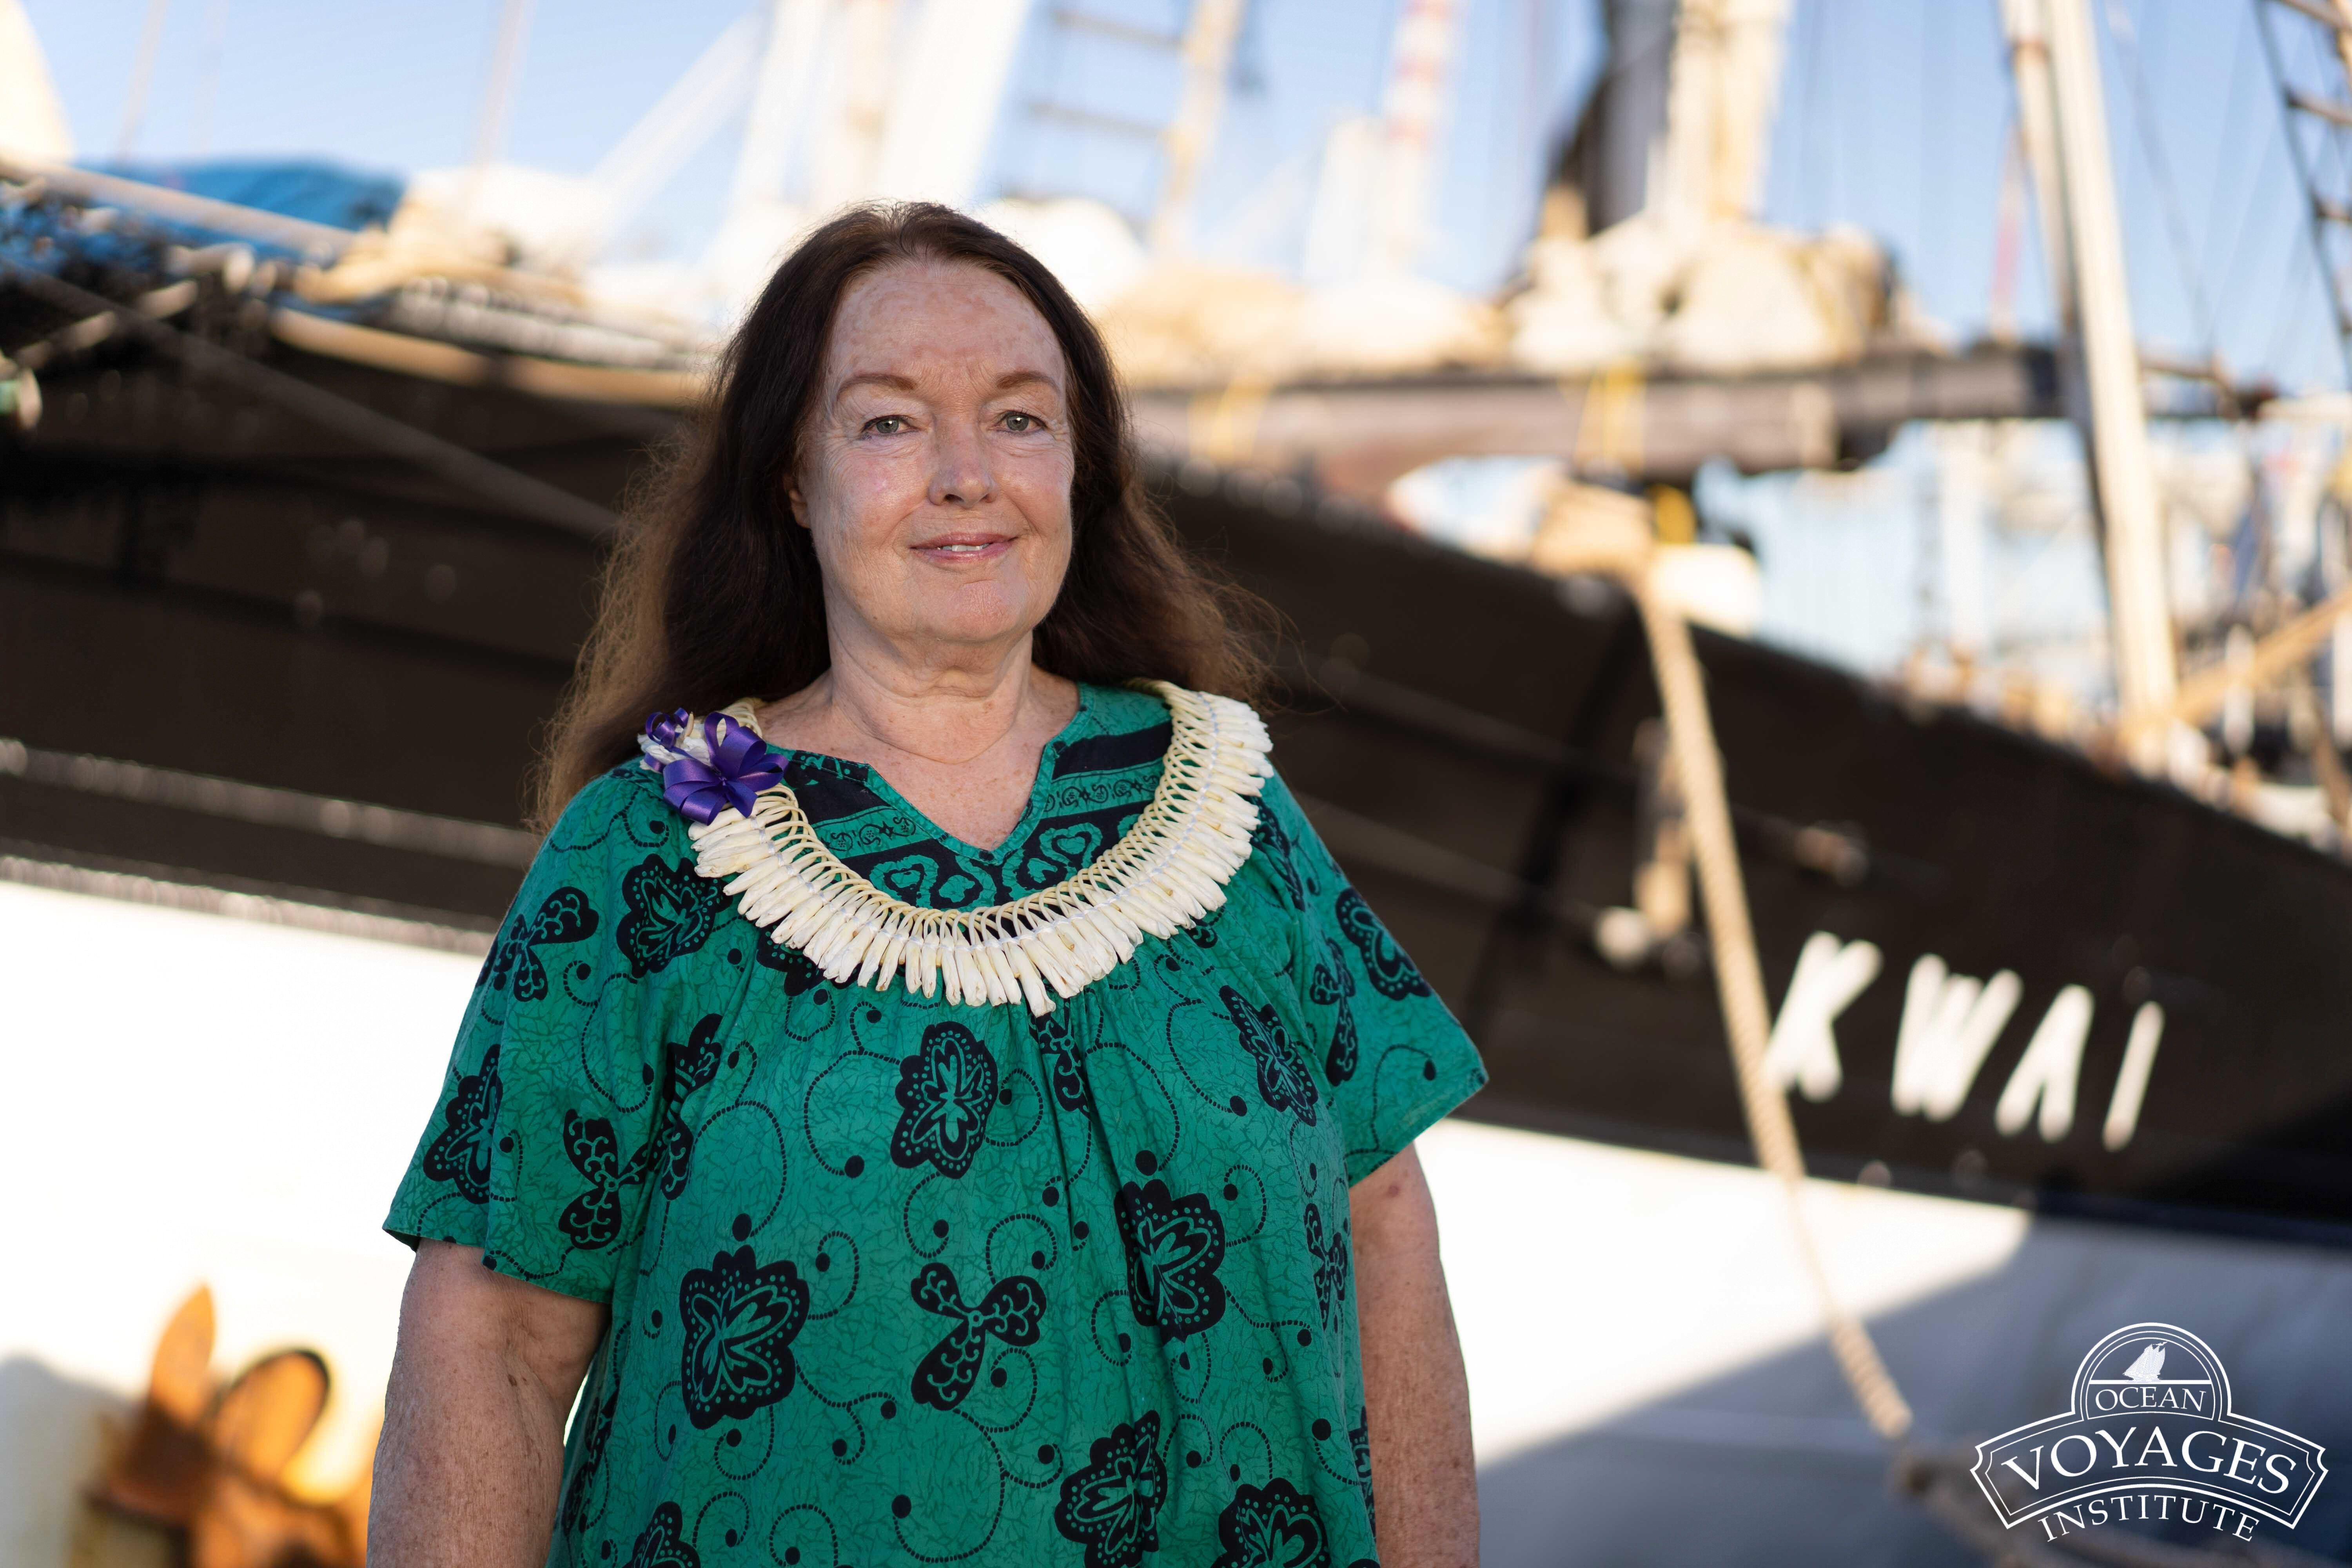 """""""We are on a roll,"""" said Mary Crowly, founder of the Ocean Voyages Institute, of their efforts to clean up the Great Pacific"""